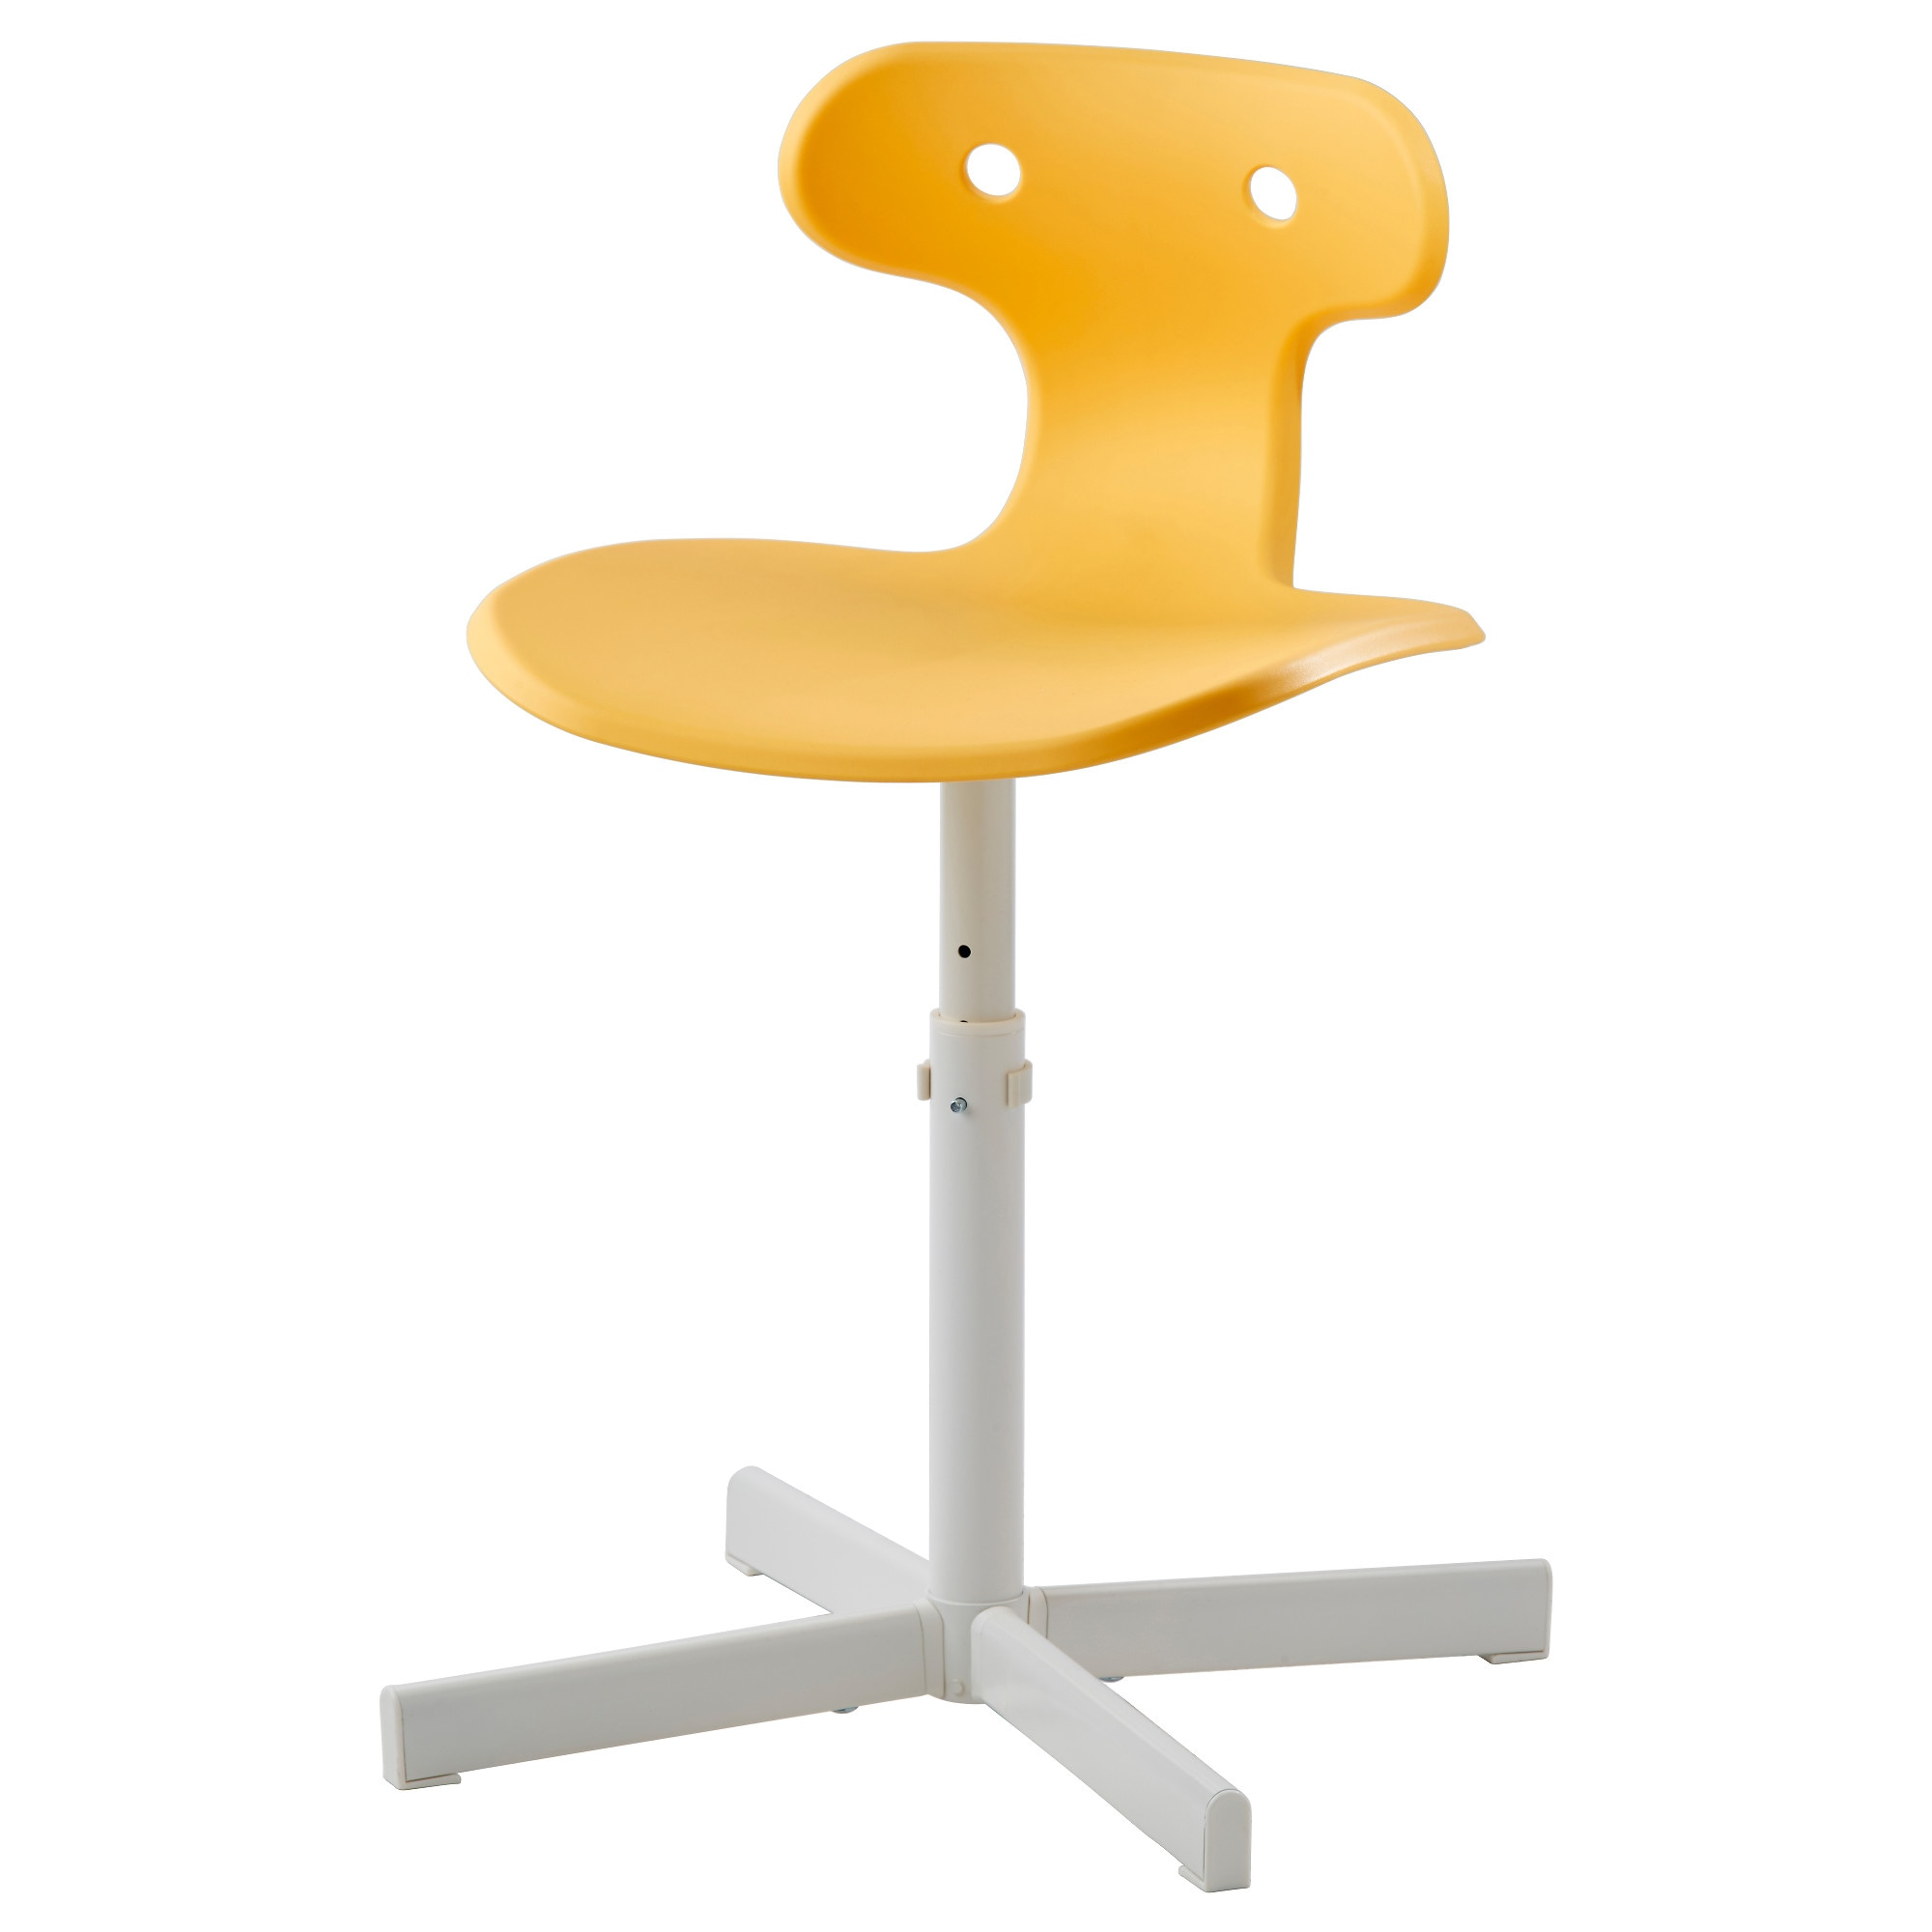 molte desk chair yellow tested for 243 lb width 15 34 amazing yellow office chair